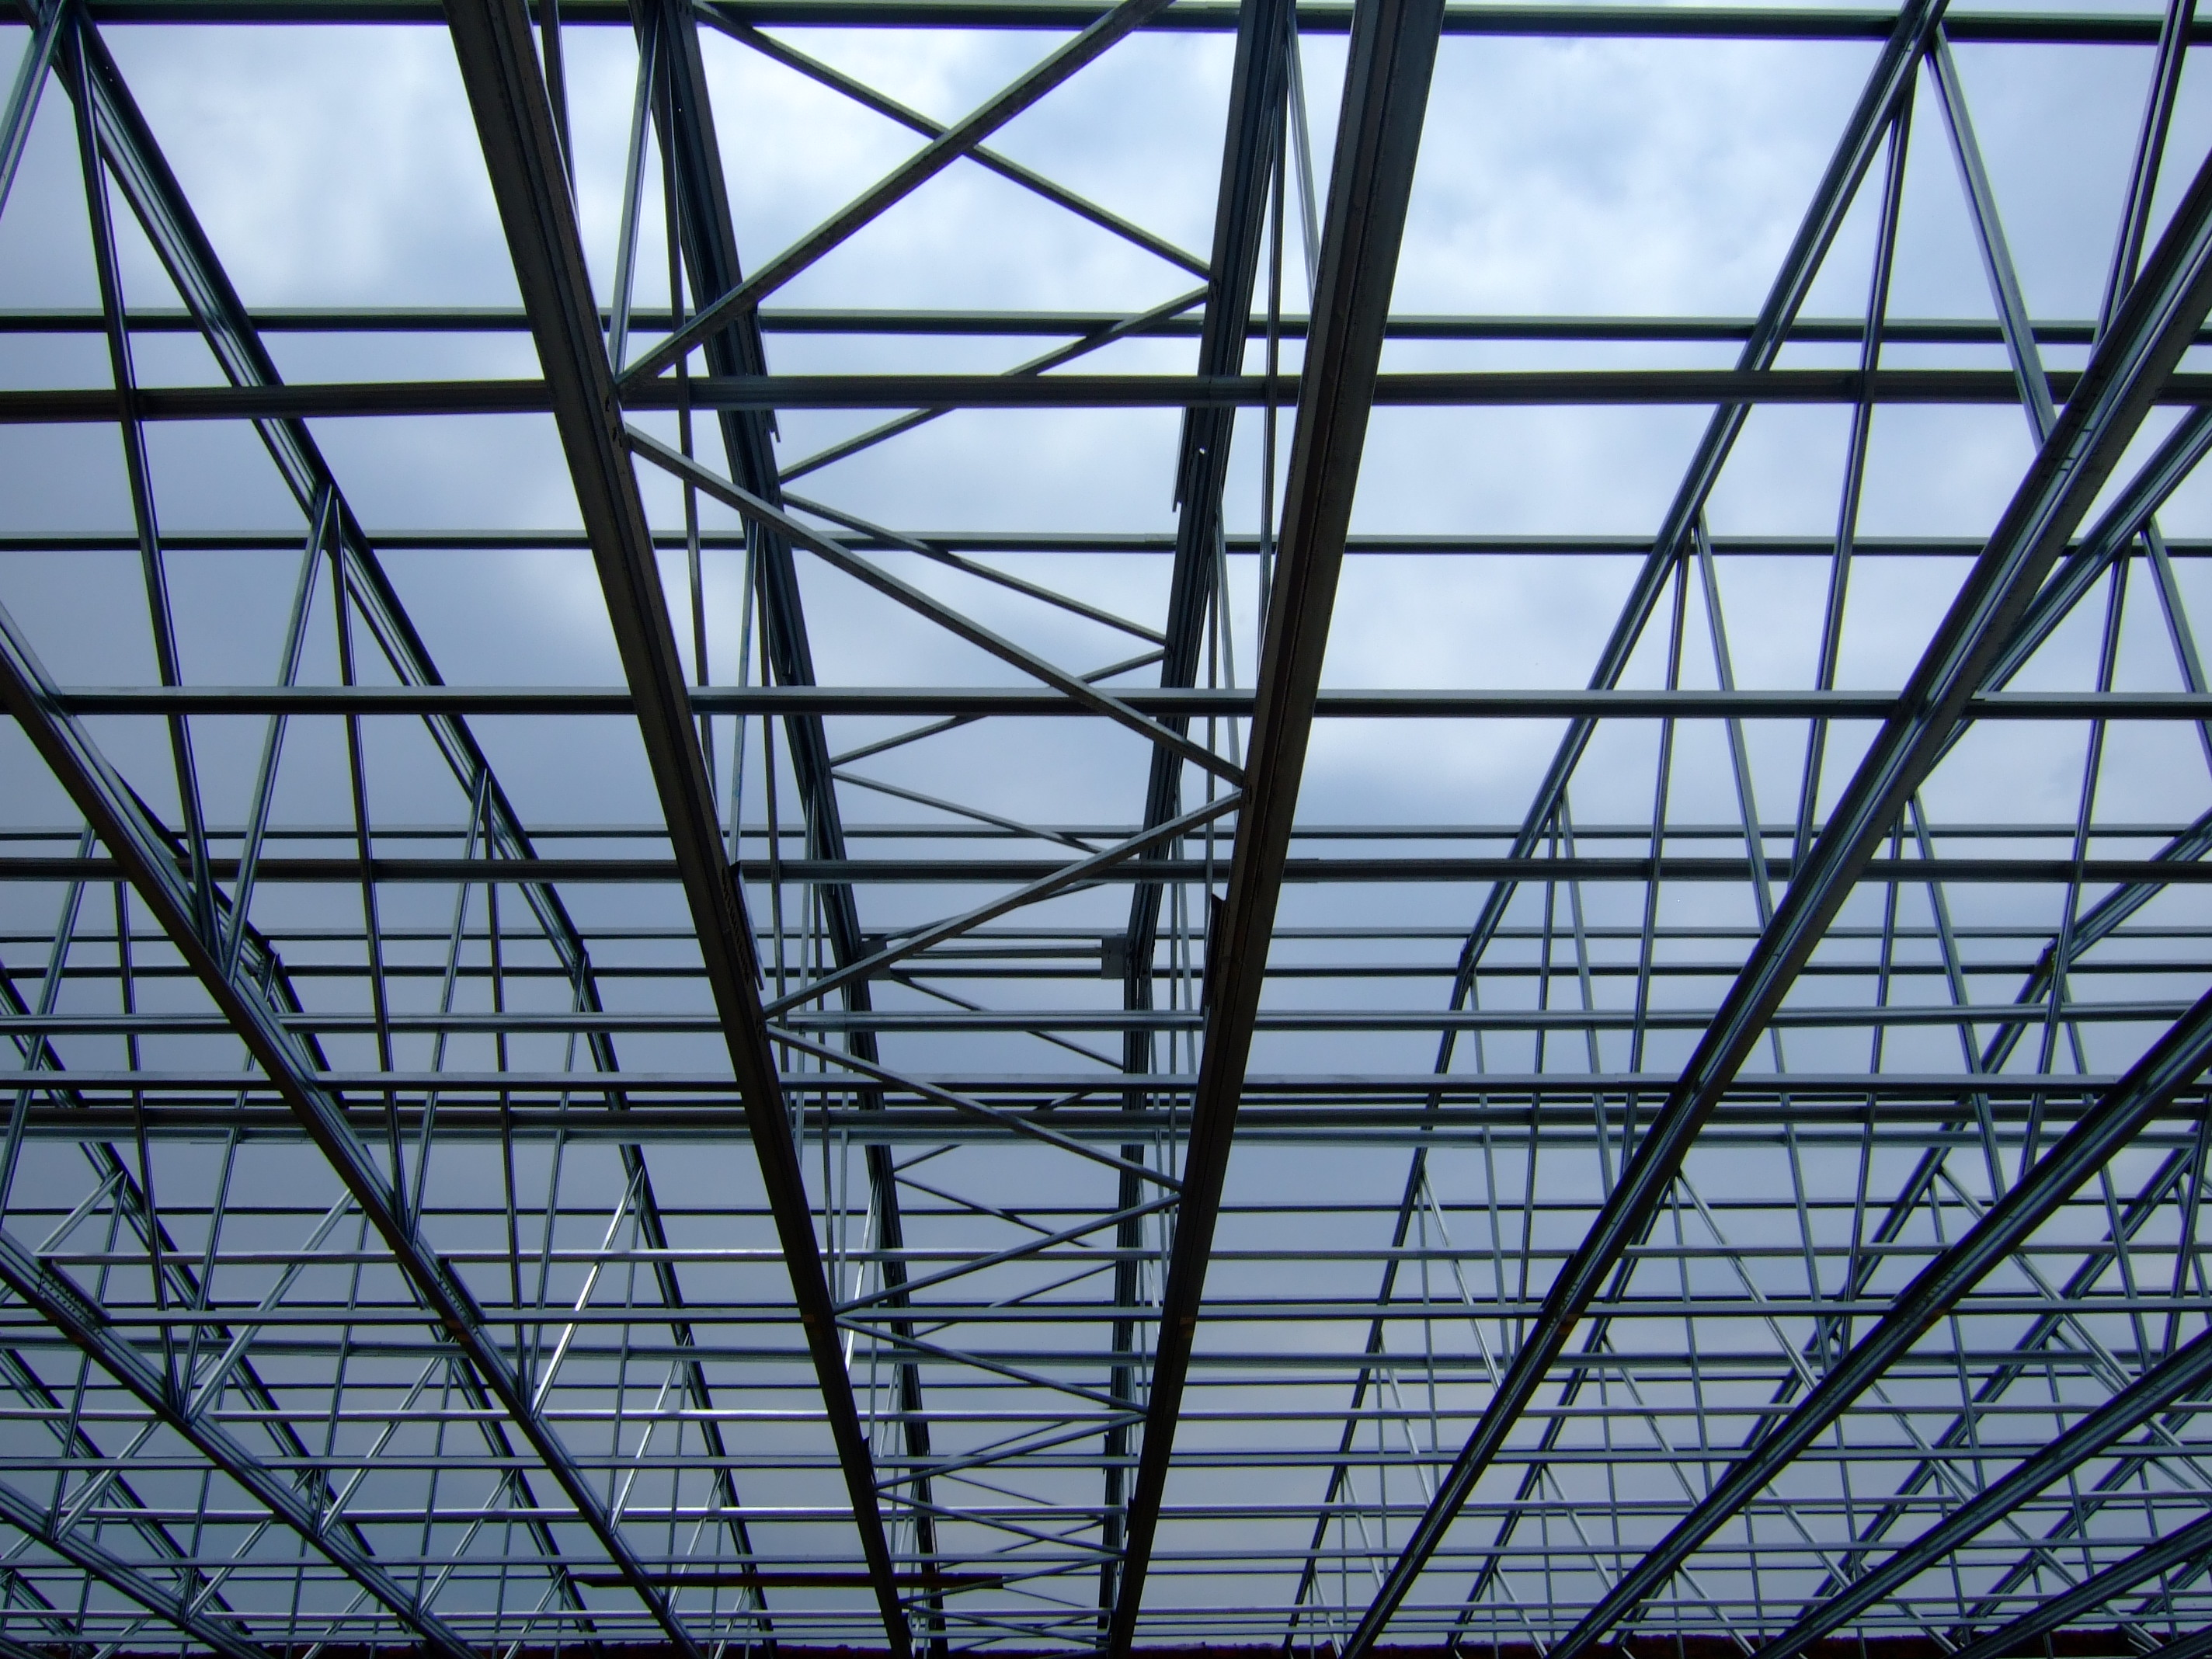 MiTek_UltraSpan_Roof_Trusses (8)